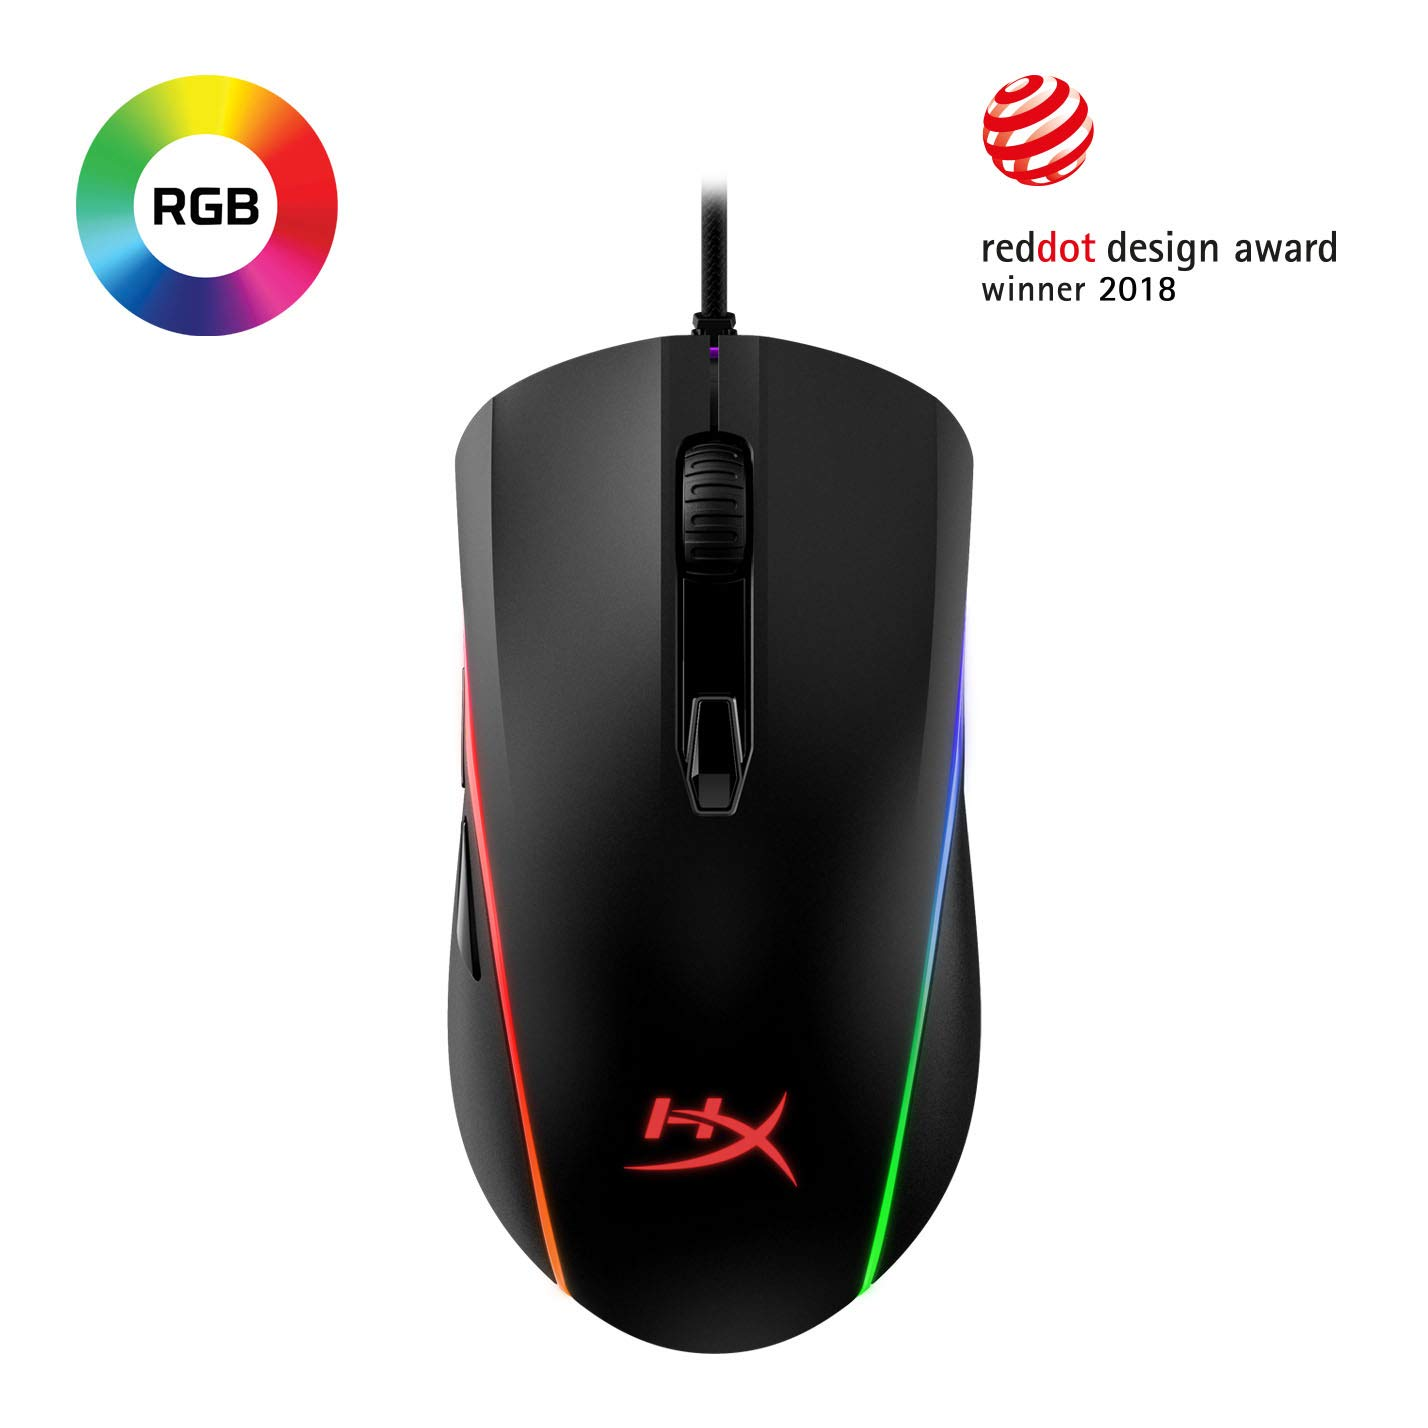 HyperX Pulsefire Surge - RGB Wired Optical Gaming Mouse, Pixart 3389 Sensor up to 16000 DPI, Ergonomic, 6 Programmable Buttons, Compatible with Windows 10/8.1/8/7 - Black by HyperX